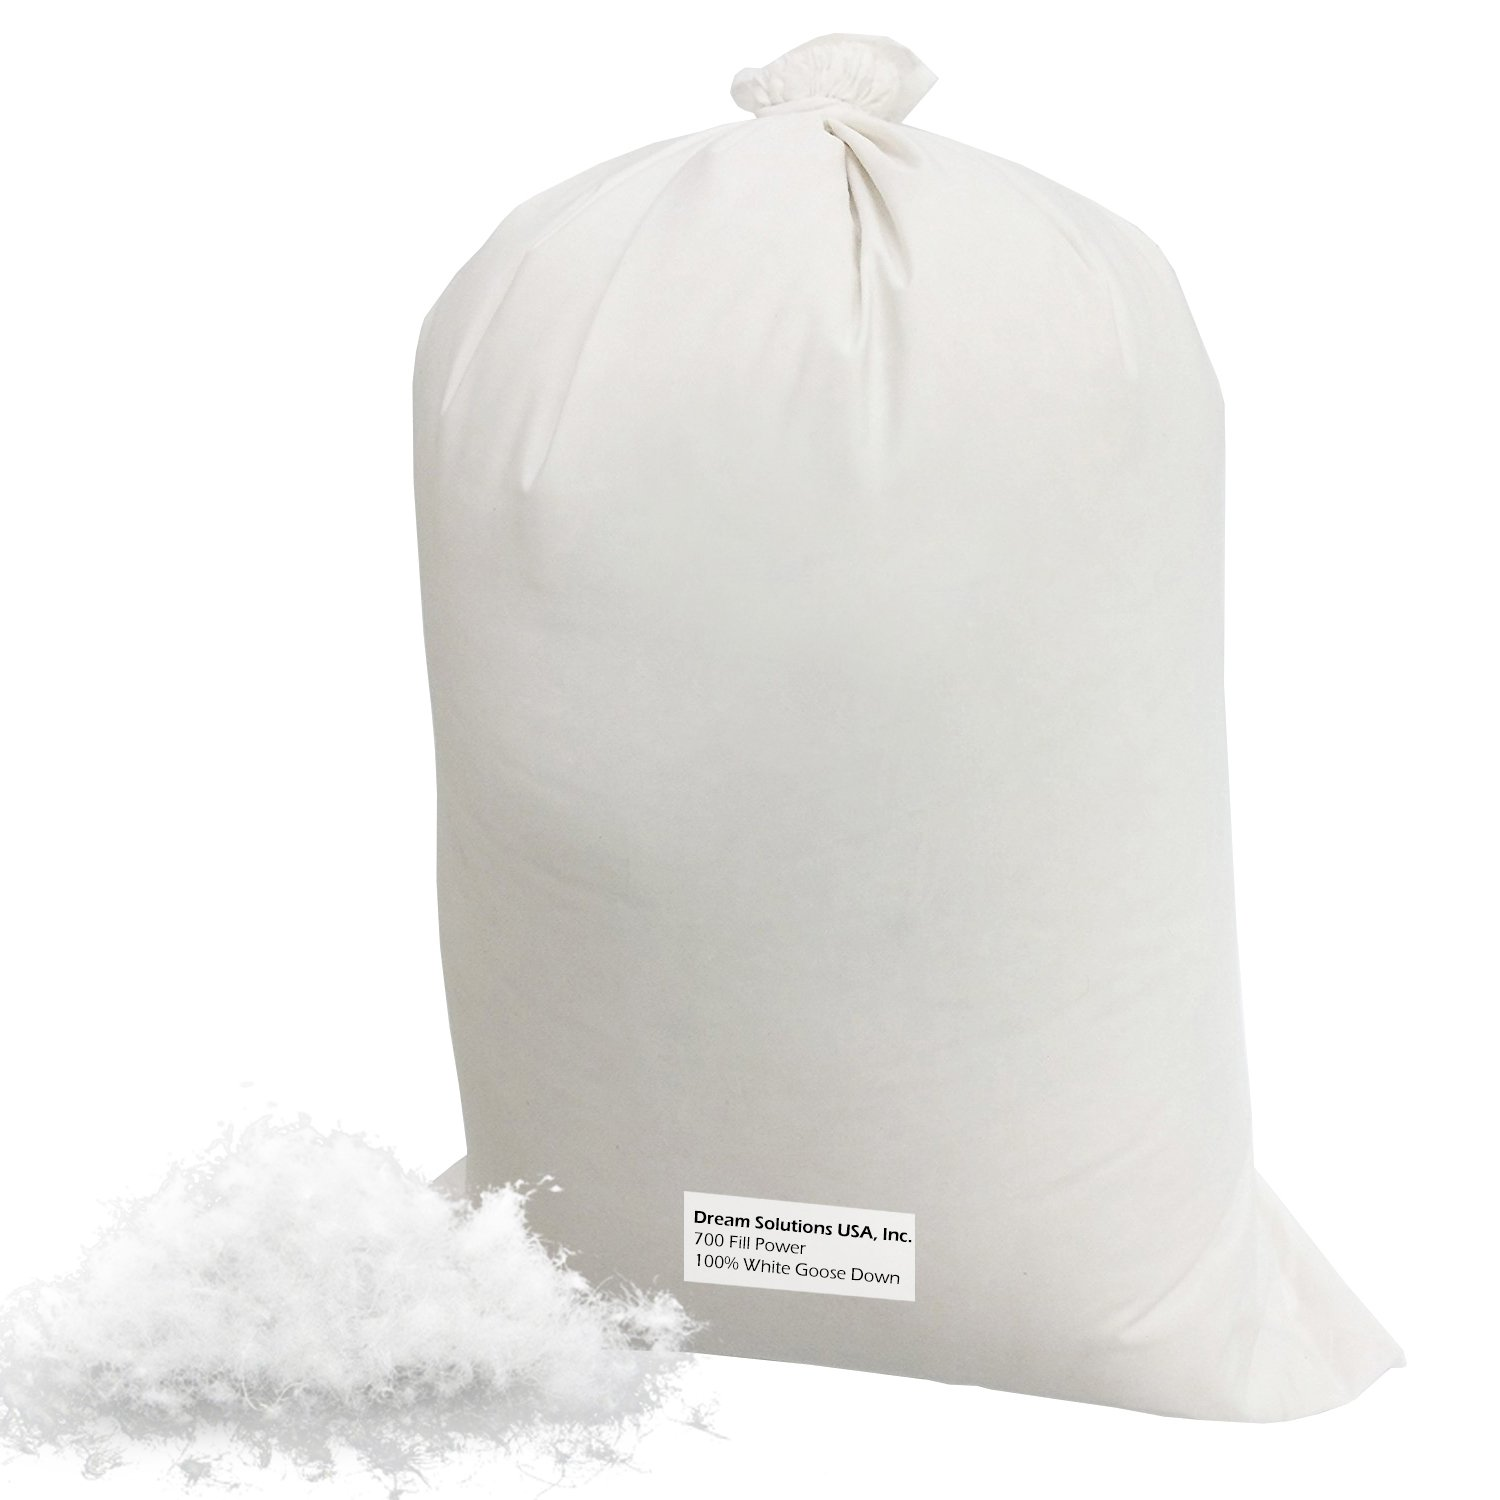 Bulk Goose Down Filling (1/2 lb.) 700 Fill Power – 100% Natural White, No Feathers – Fill Comforters, Pillows, Jackets and More – Ultra-Plush Hungarian Softness - Dream Solutions USA Brand GWD-1/2LB